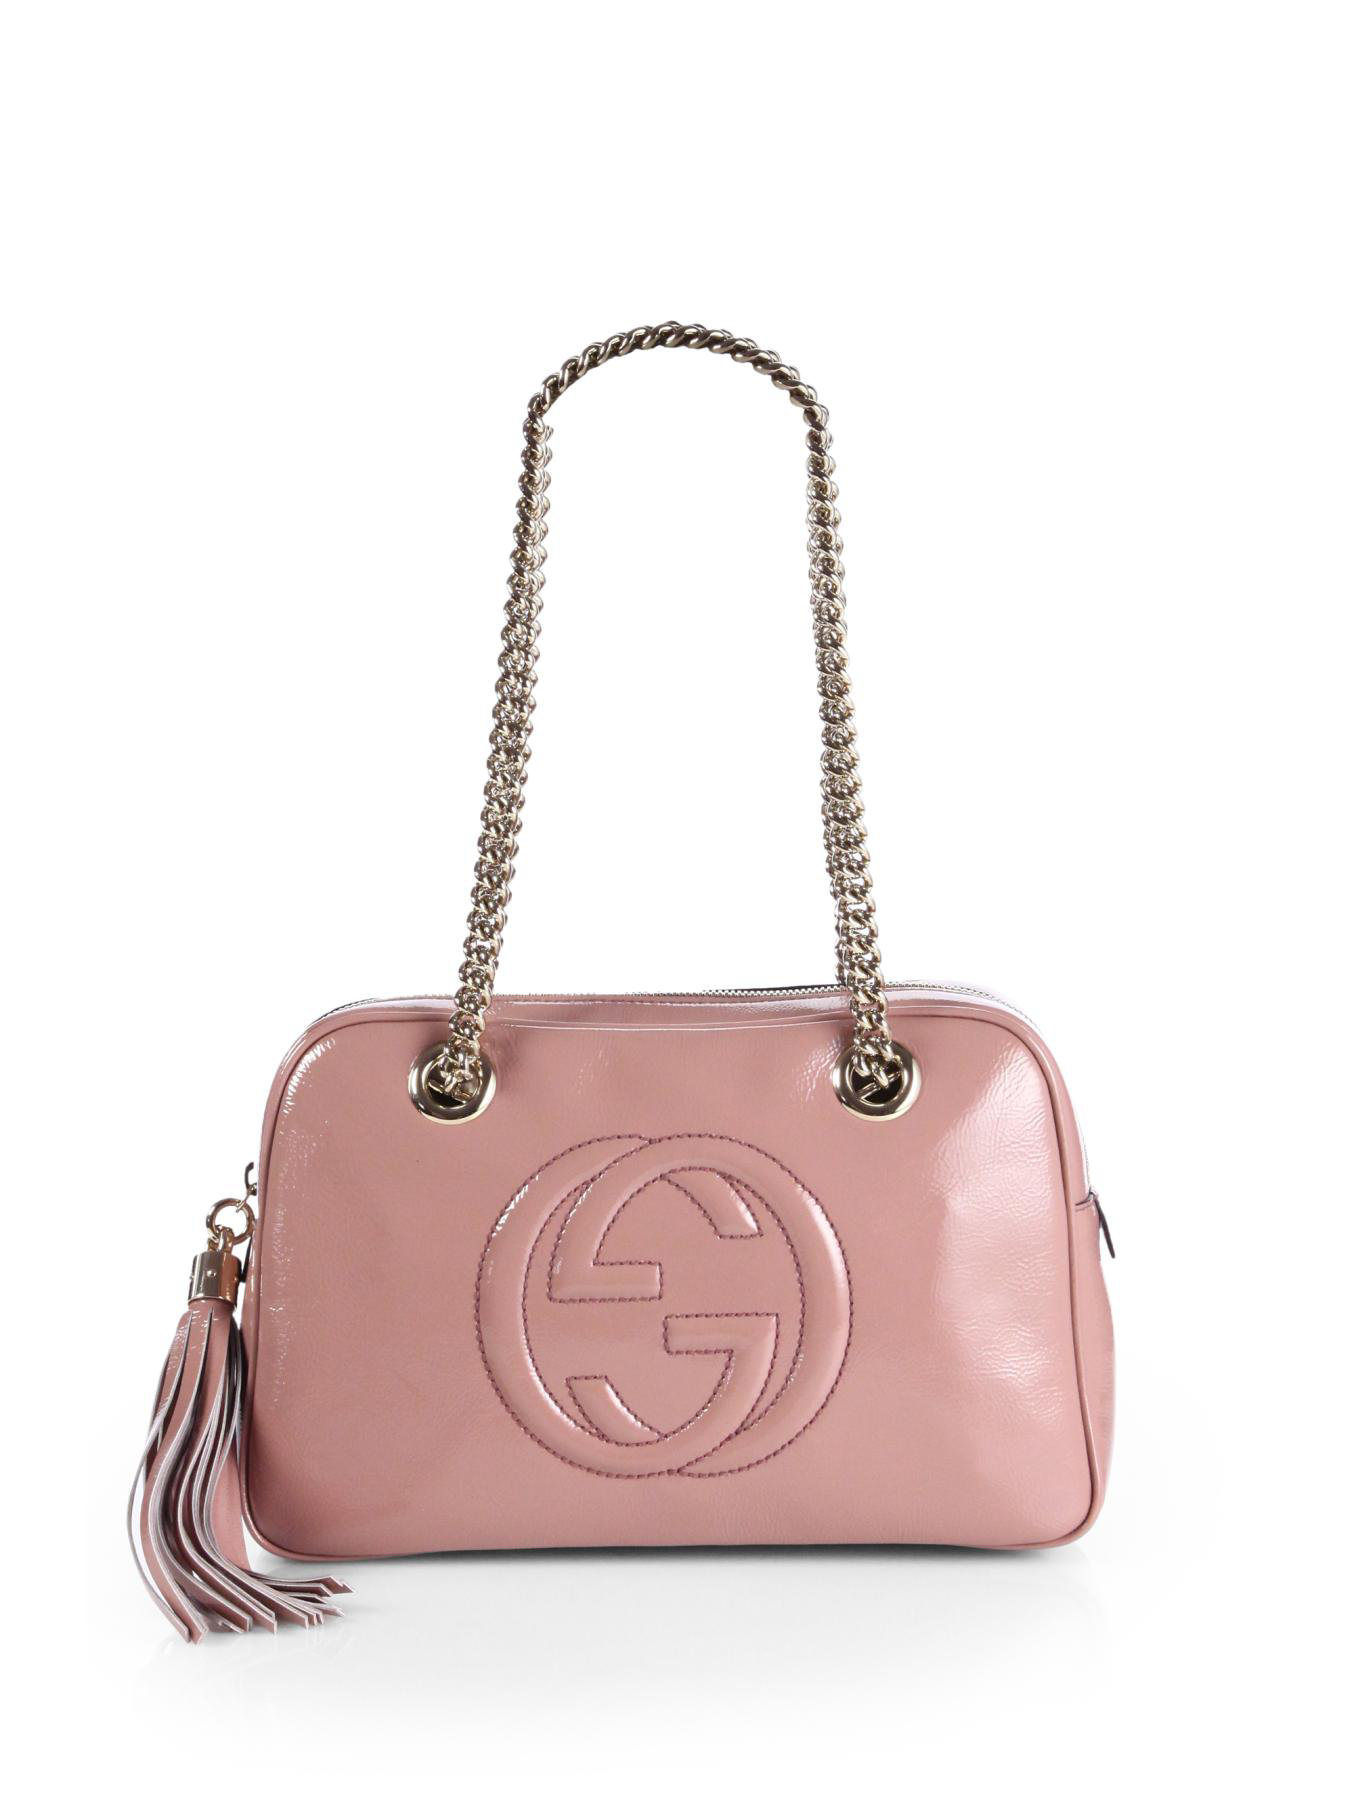 5967100bb114 Gucci Soho Leather Shoulder Bag Pink | Stanford Center for ...